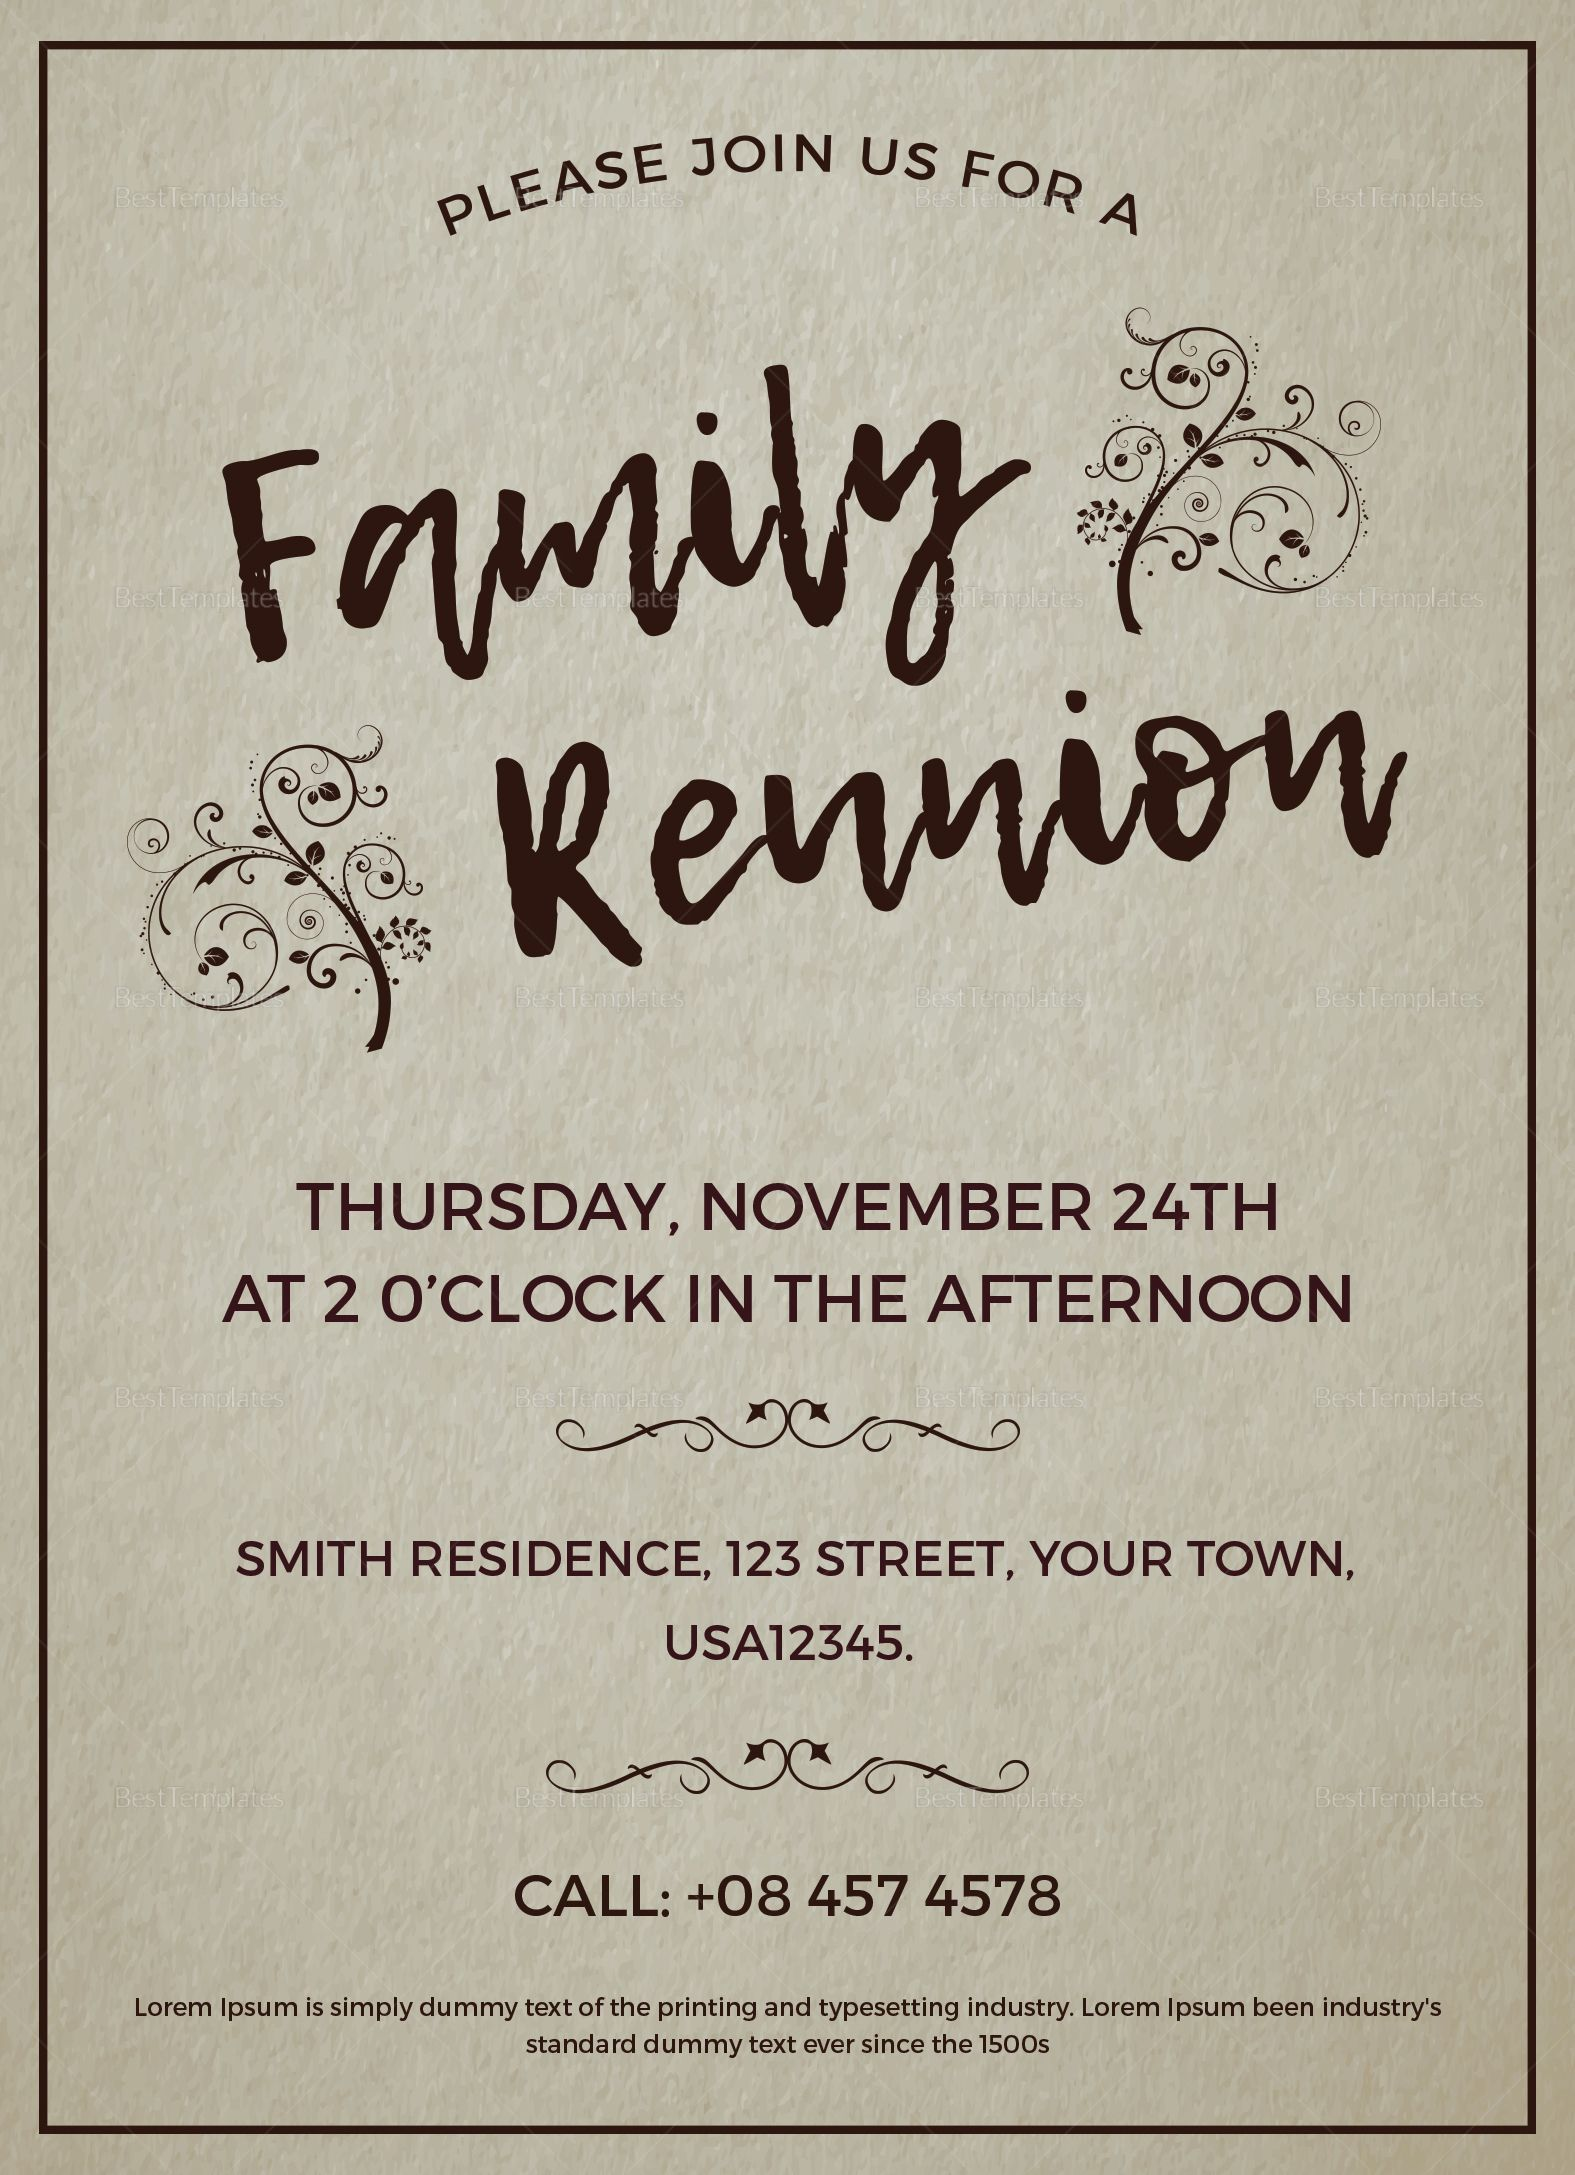 002 Formidable Family Reunion Flyer Template Word High Def Full